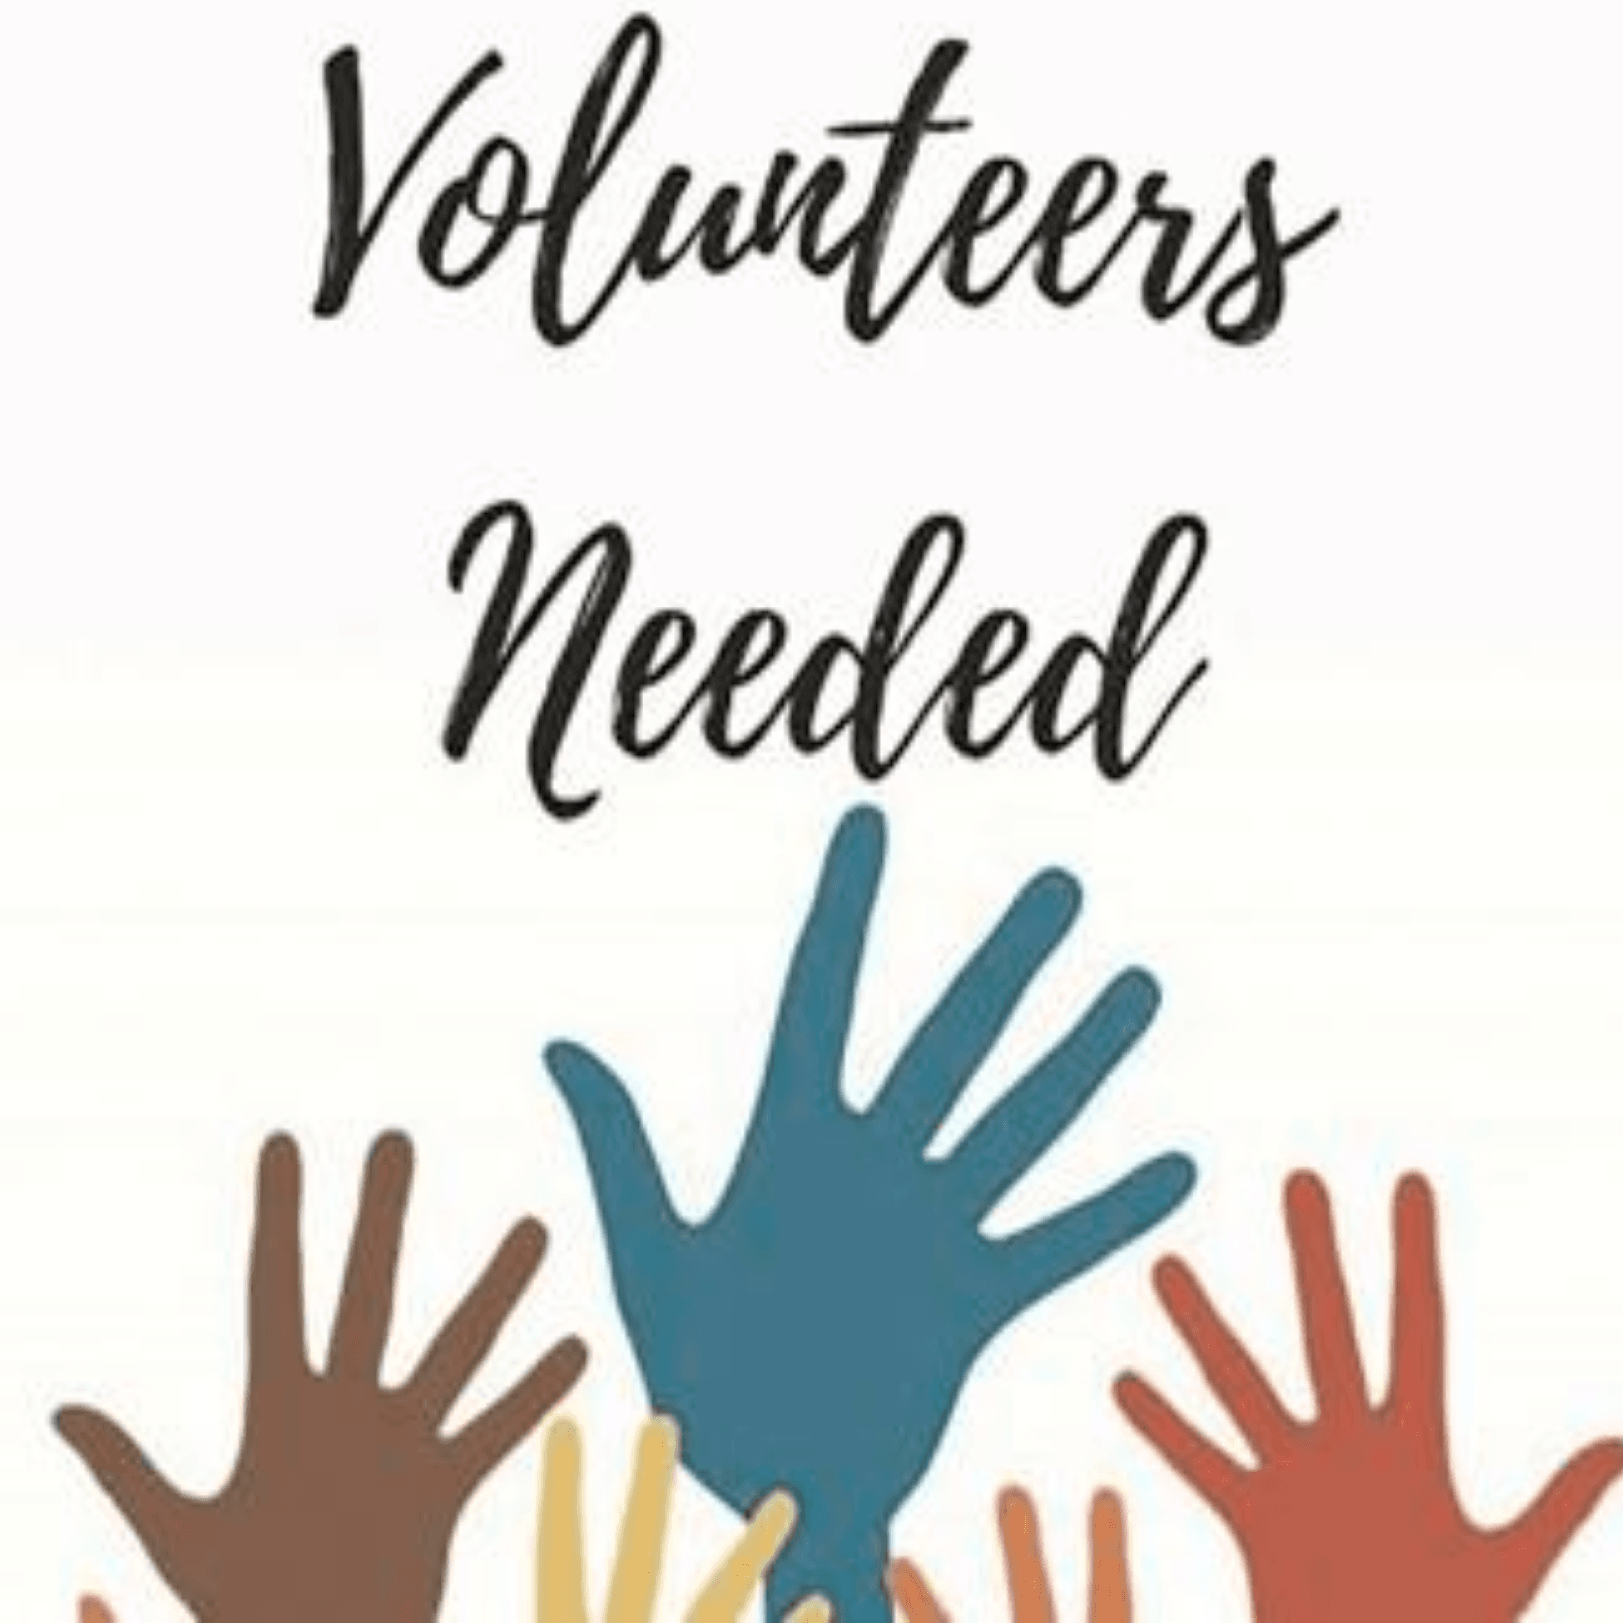 Image of Shelter Volunteers Needed